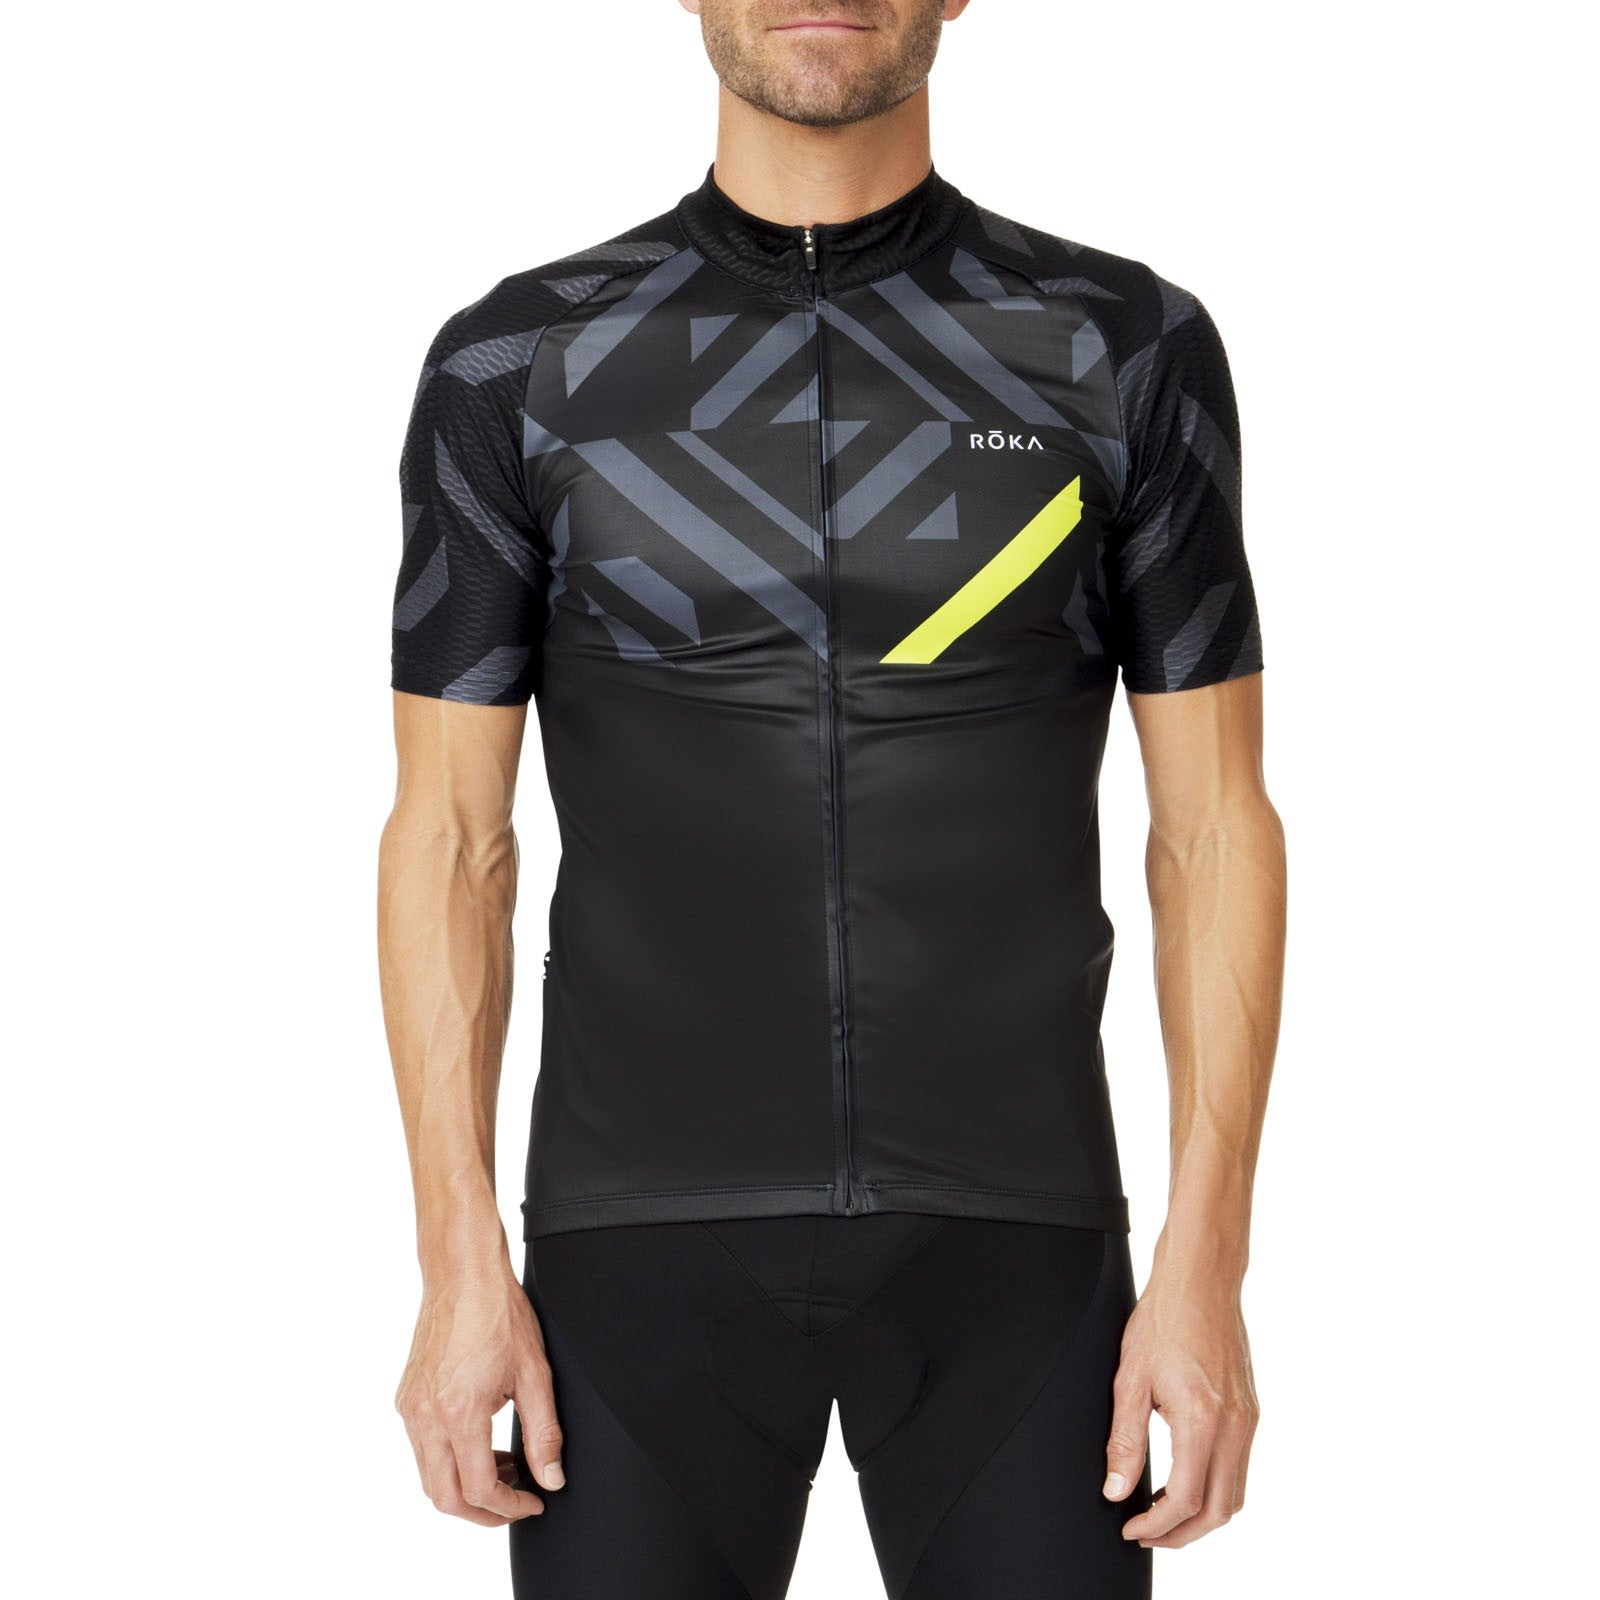 Men's Cycling Pro All-Season Jersey (Acid Lime) - ROKA